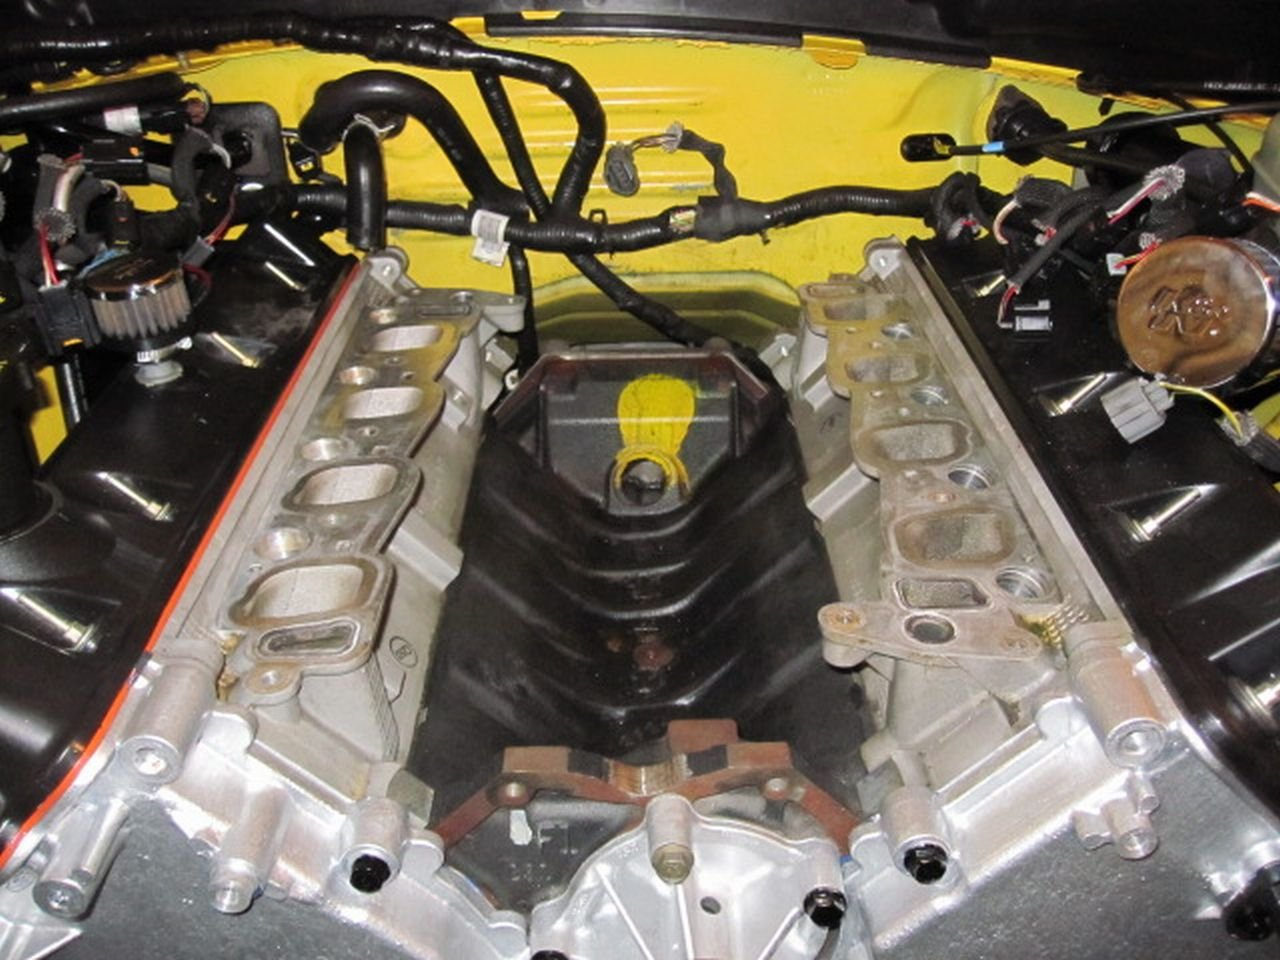 Supercharger blower intake